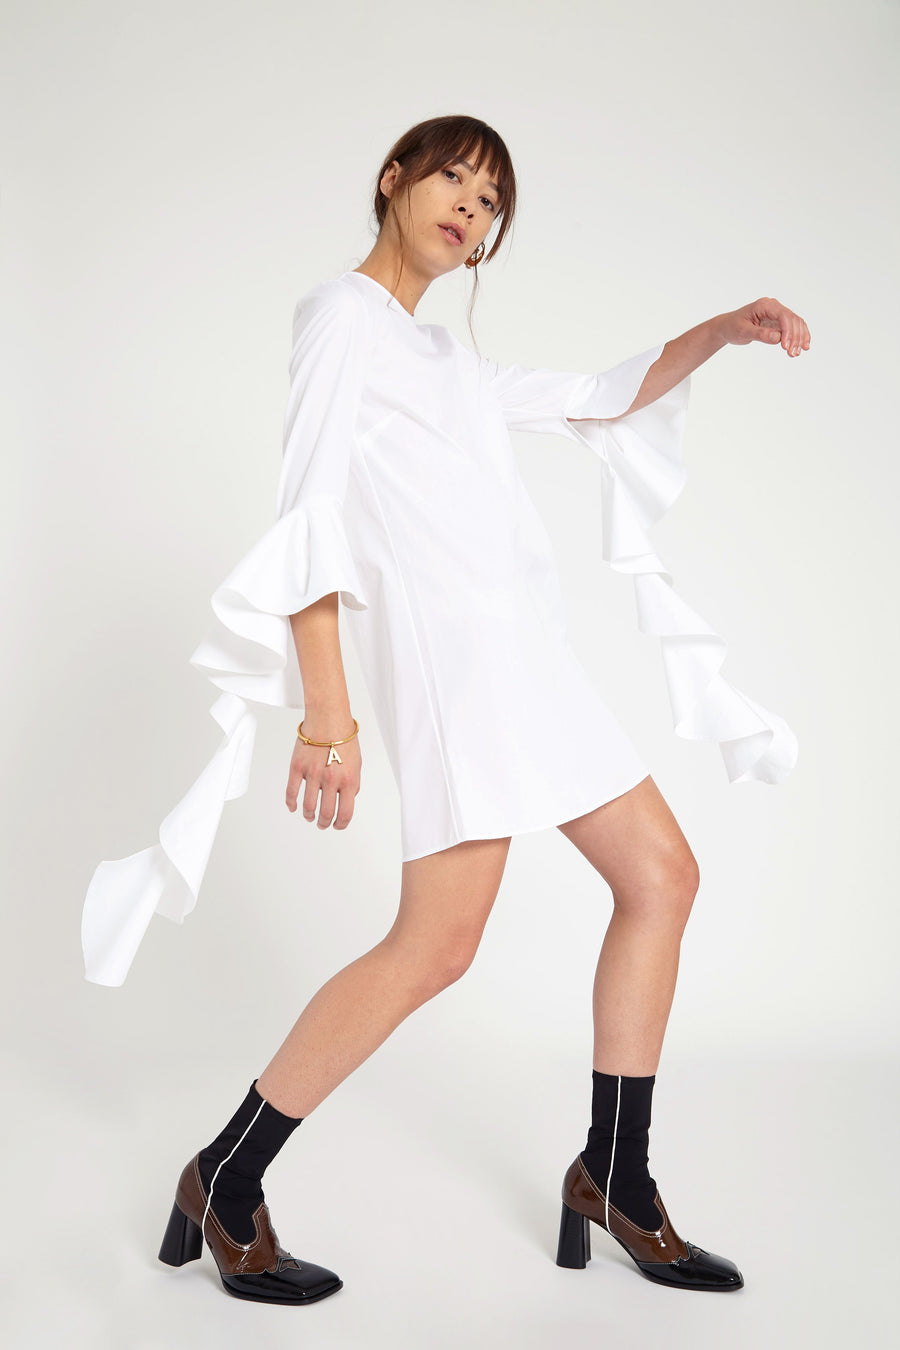 KILKENNY DRESS IN SHIRTING WHITE